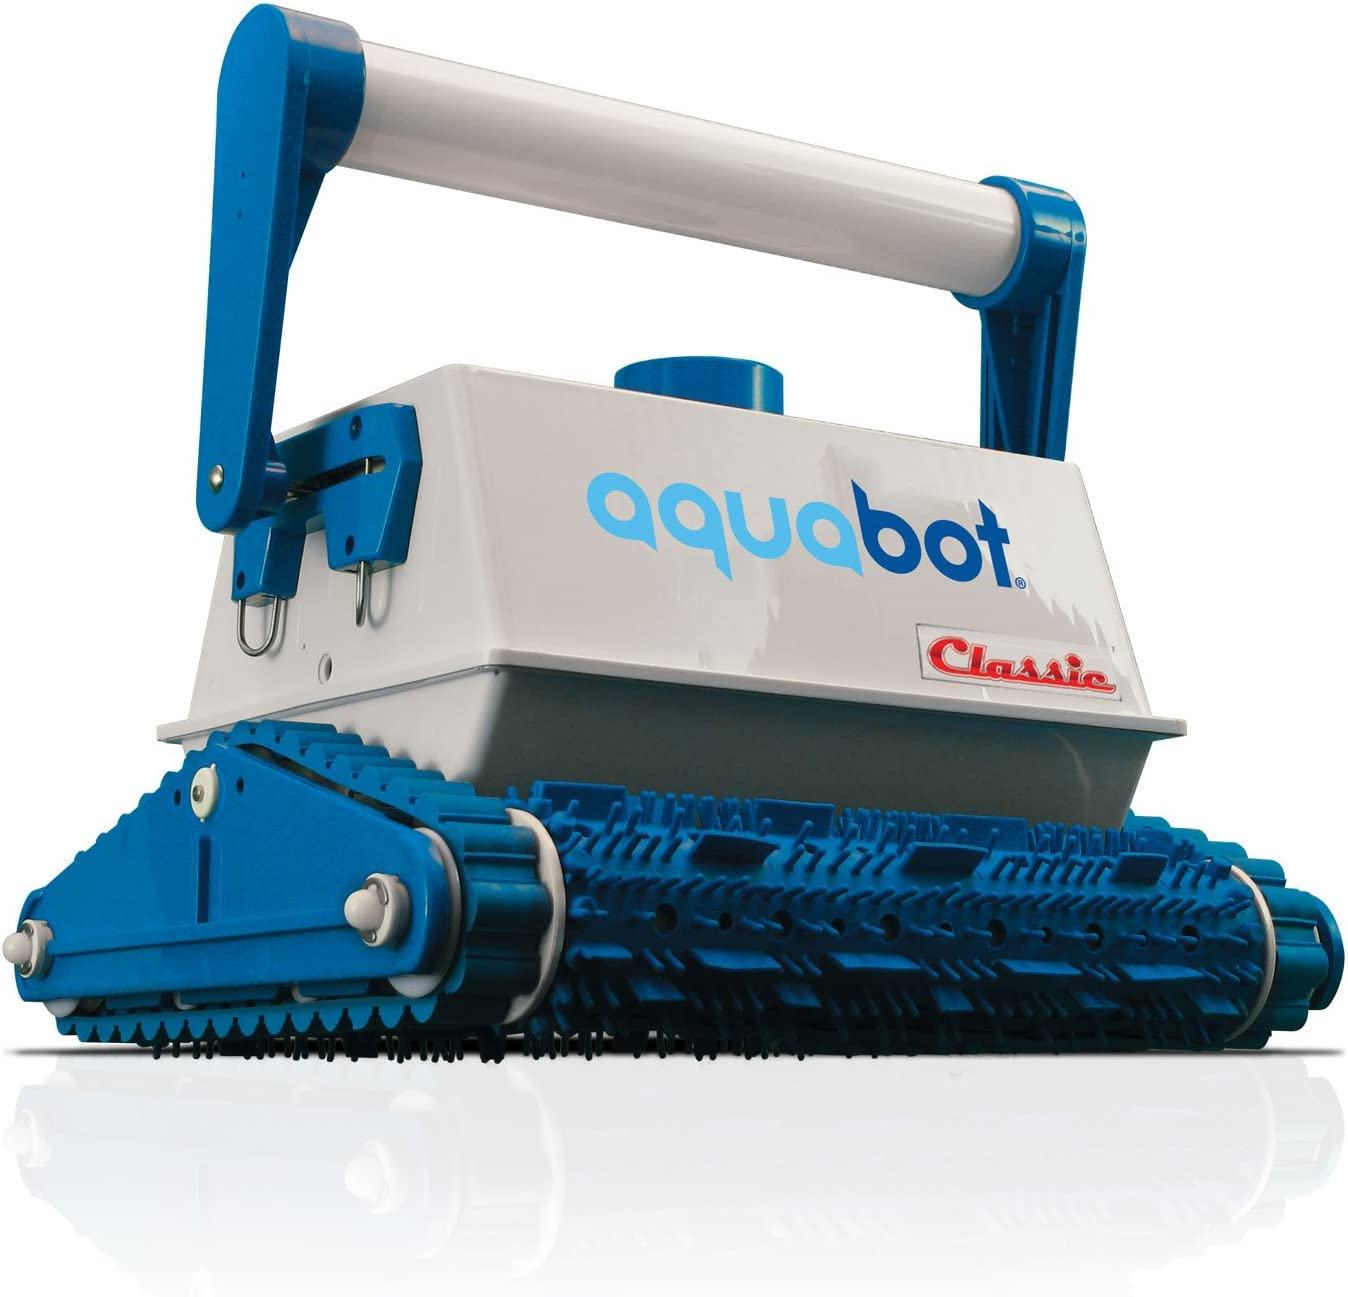 Aquabot Classic AB Robotic Pool Cleaner